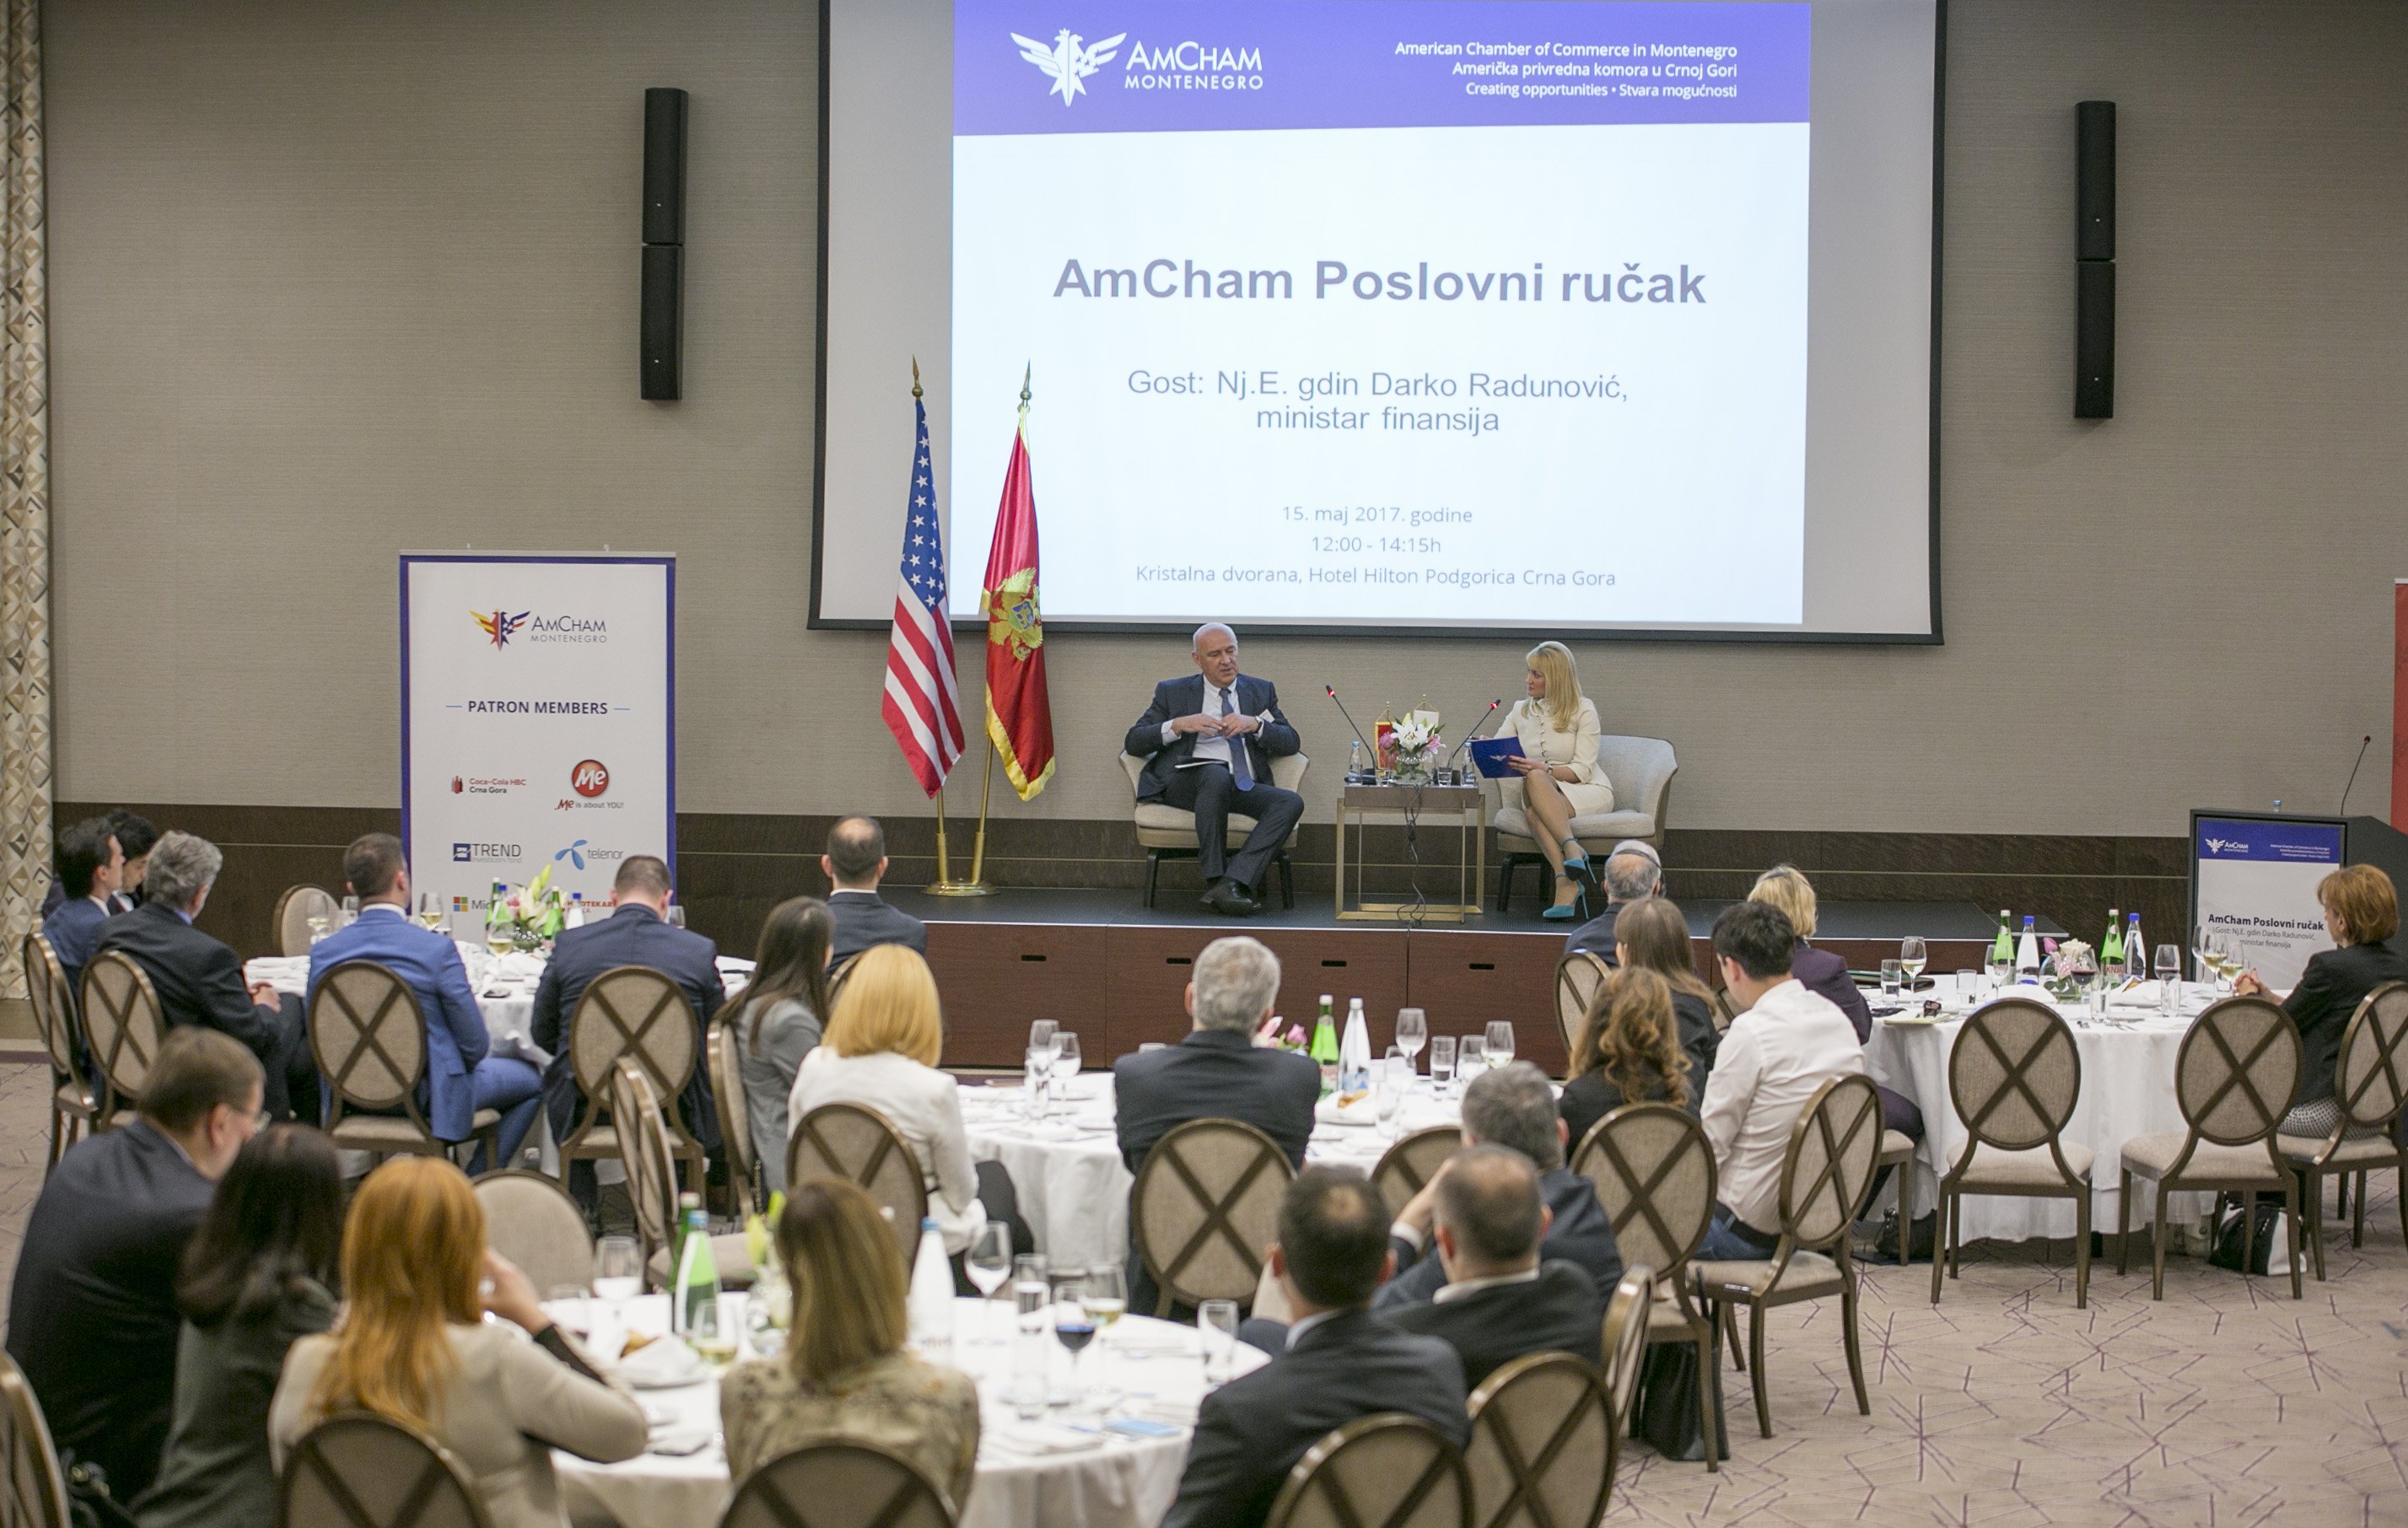 AmCham Business Luncheon with Minister of Finance, H.E. Darko Radunović